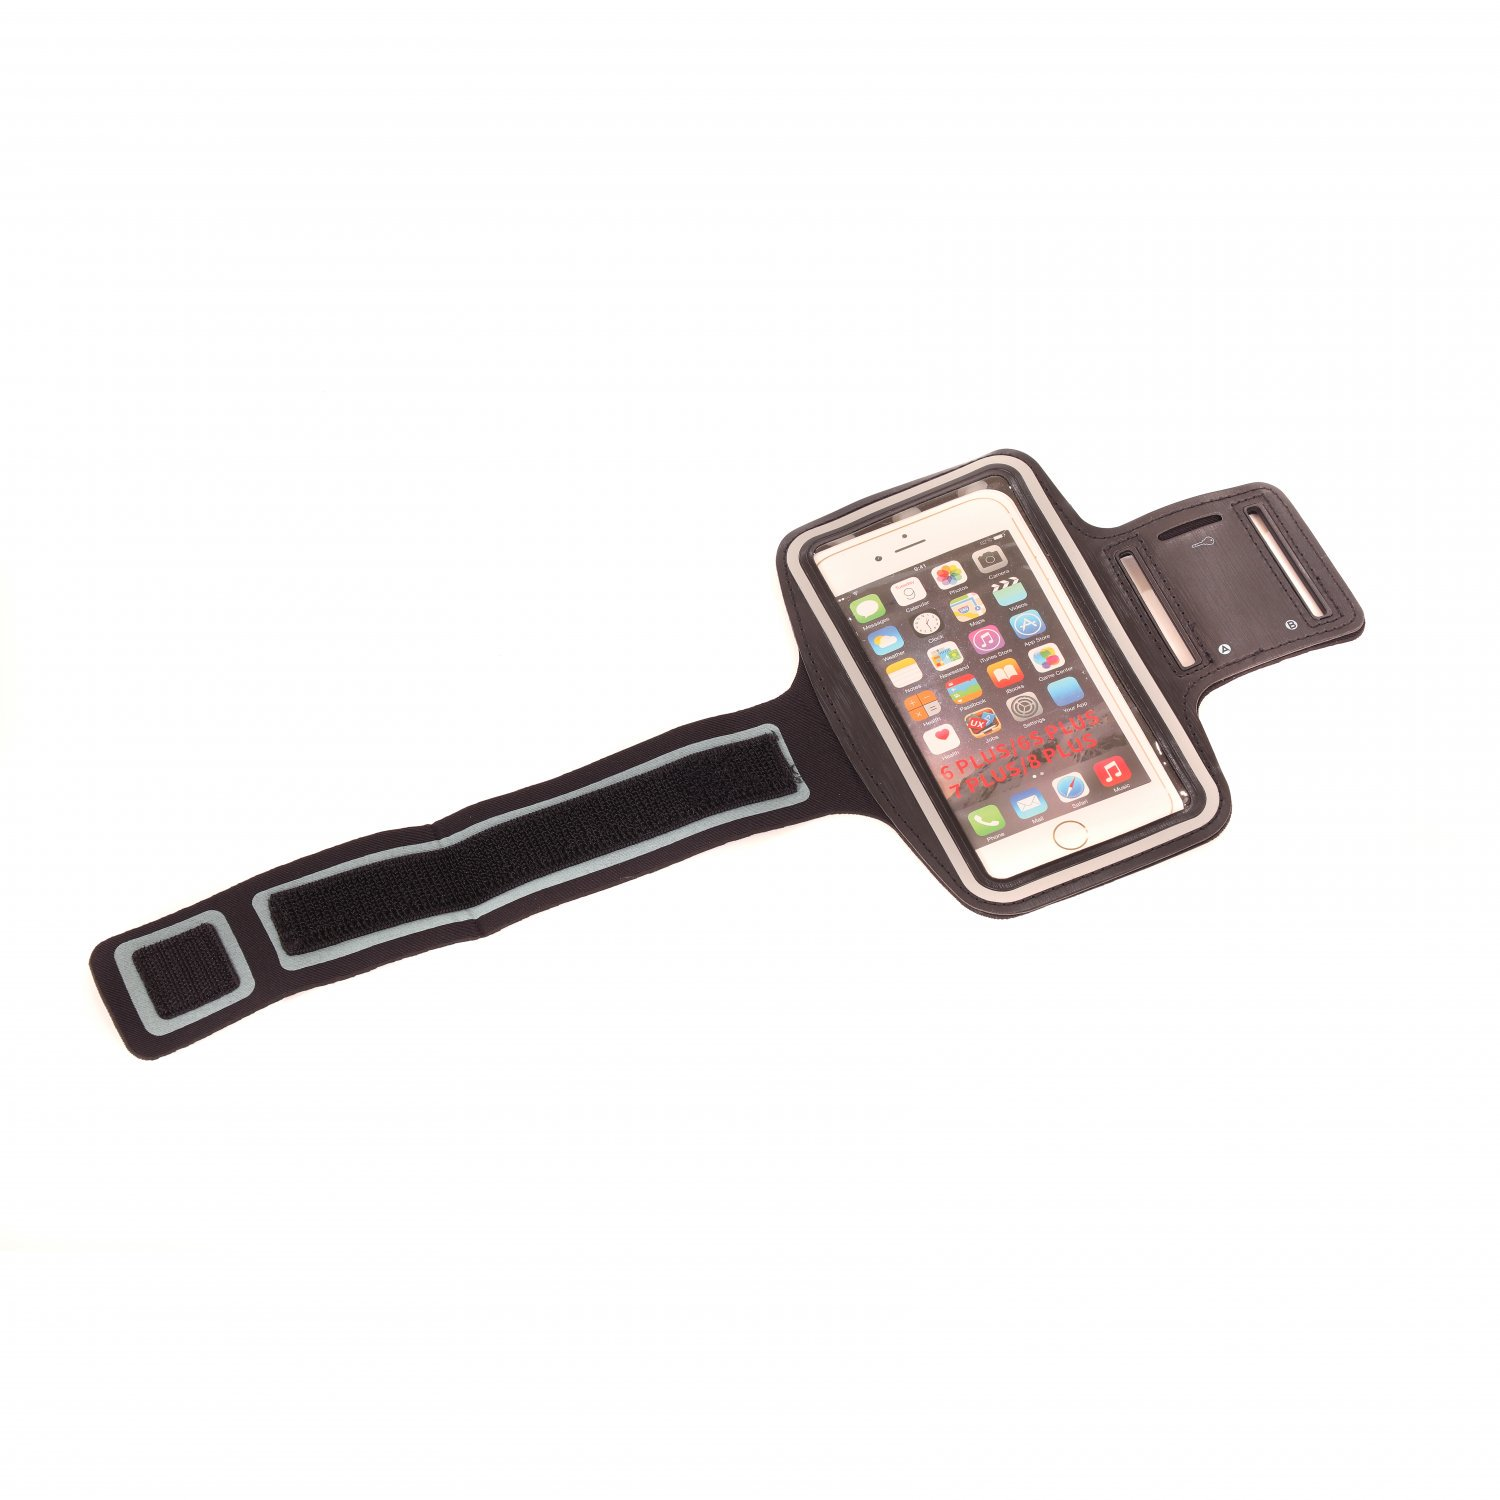 Universal Waterproof Running Jogging Armband Phone Holder